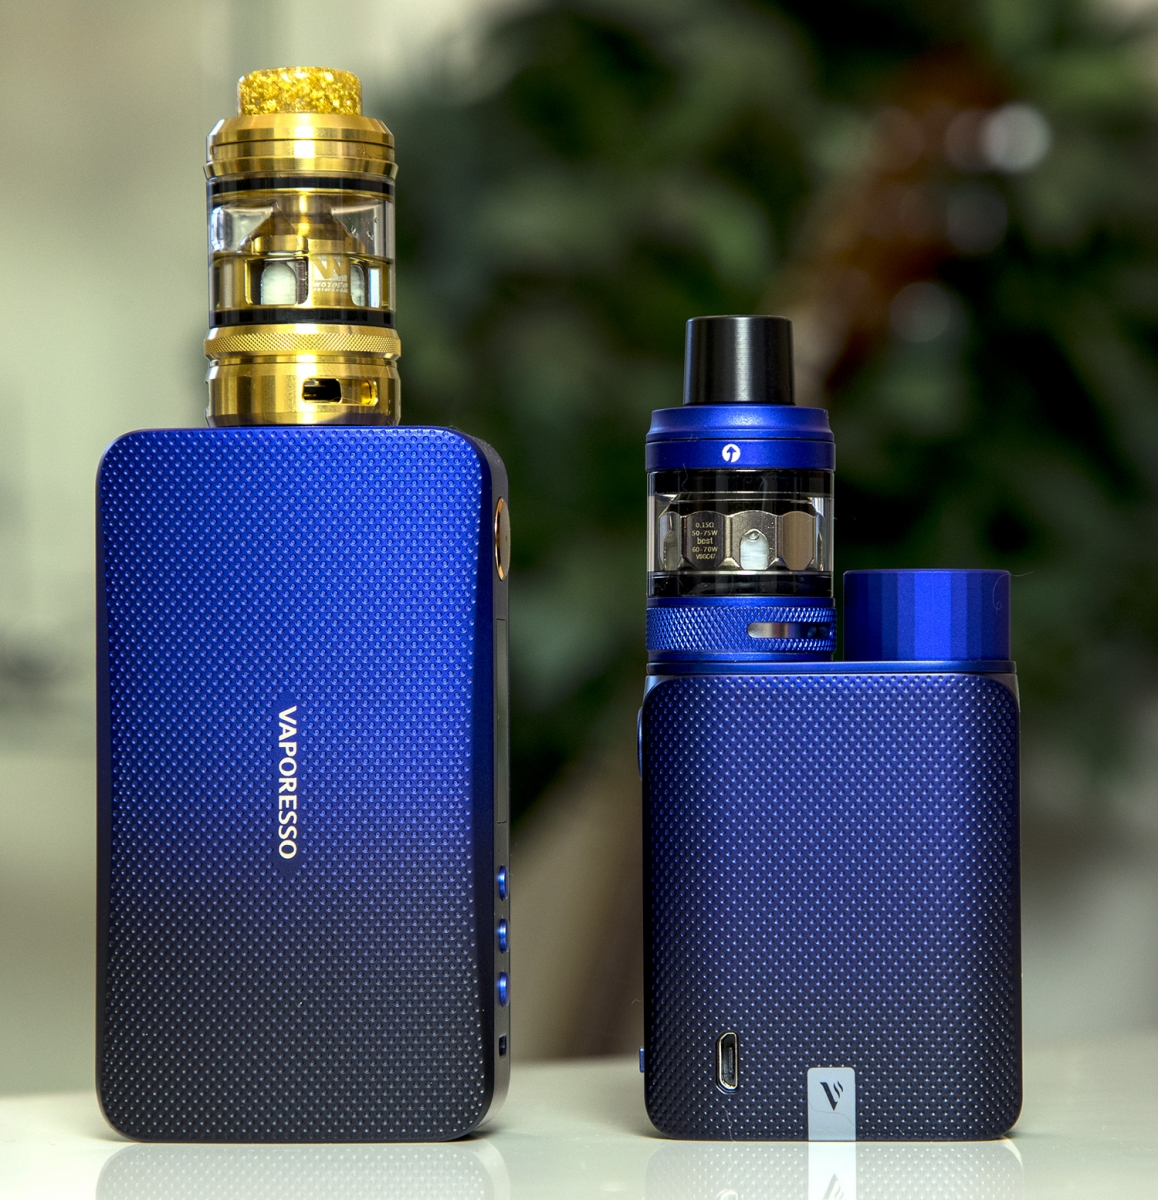 Vaporesso Swag 2 front and back